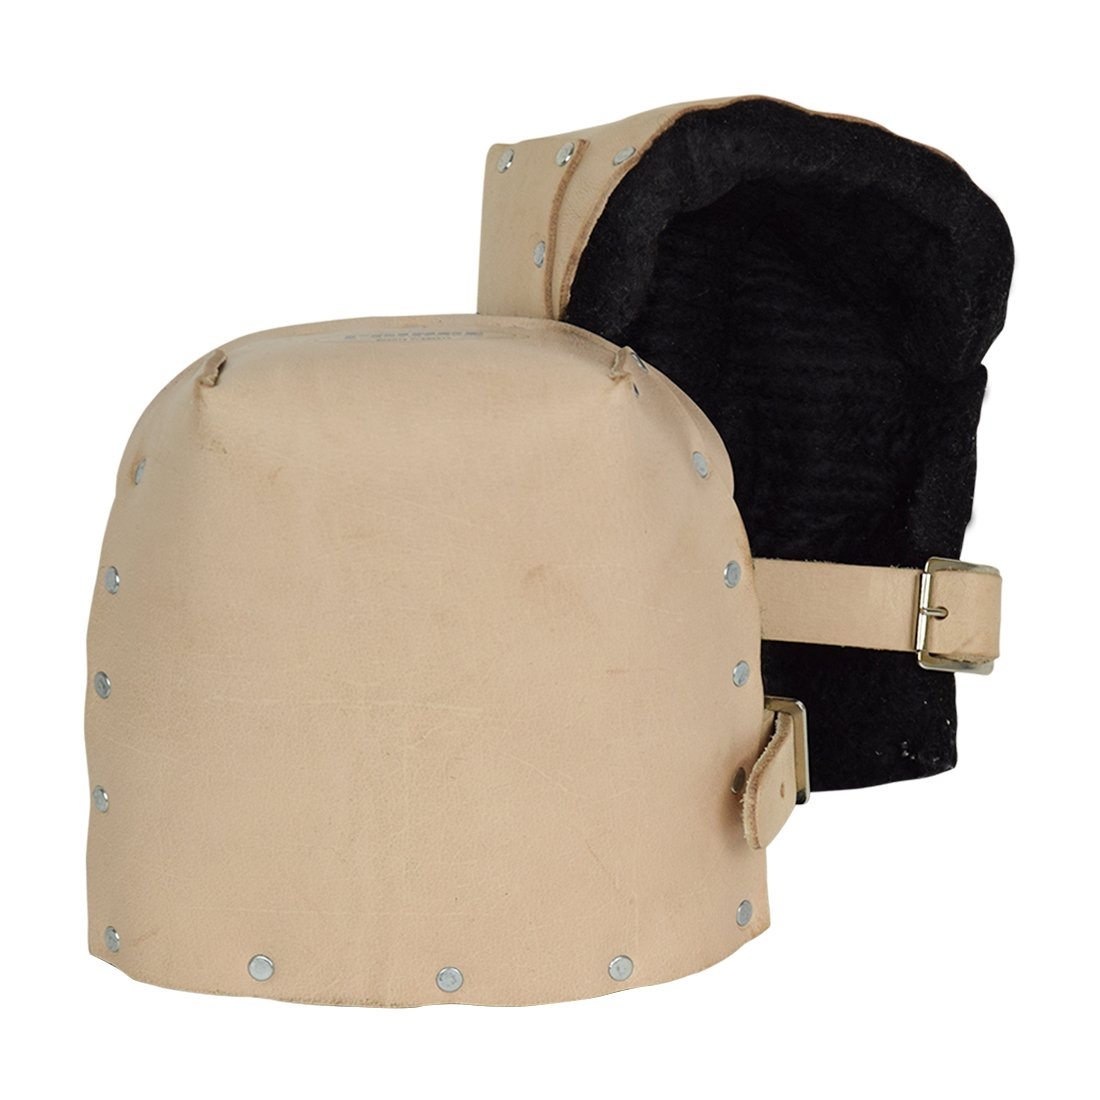 Prince P-309B Heavy Duty Top Grain Leather Kneepads with Thick Felt Lining for Construction